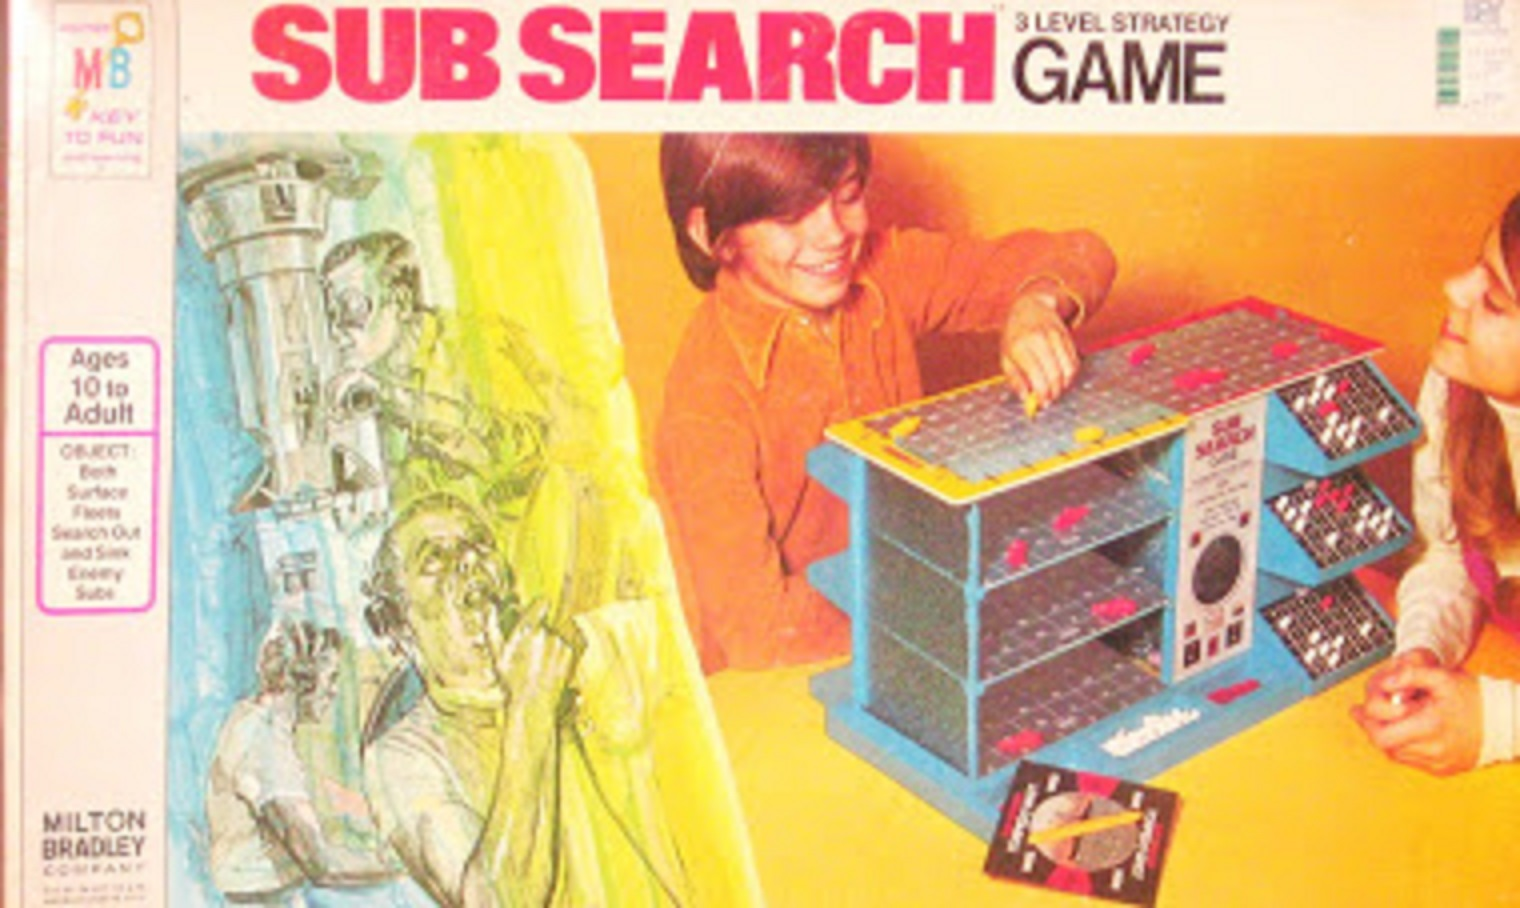 Subsearch dating sim